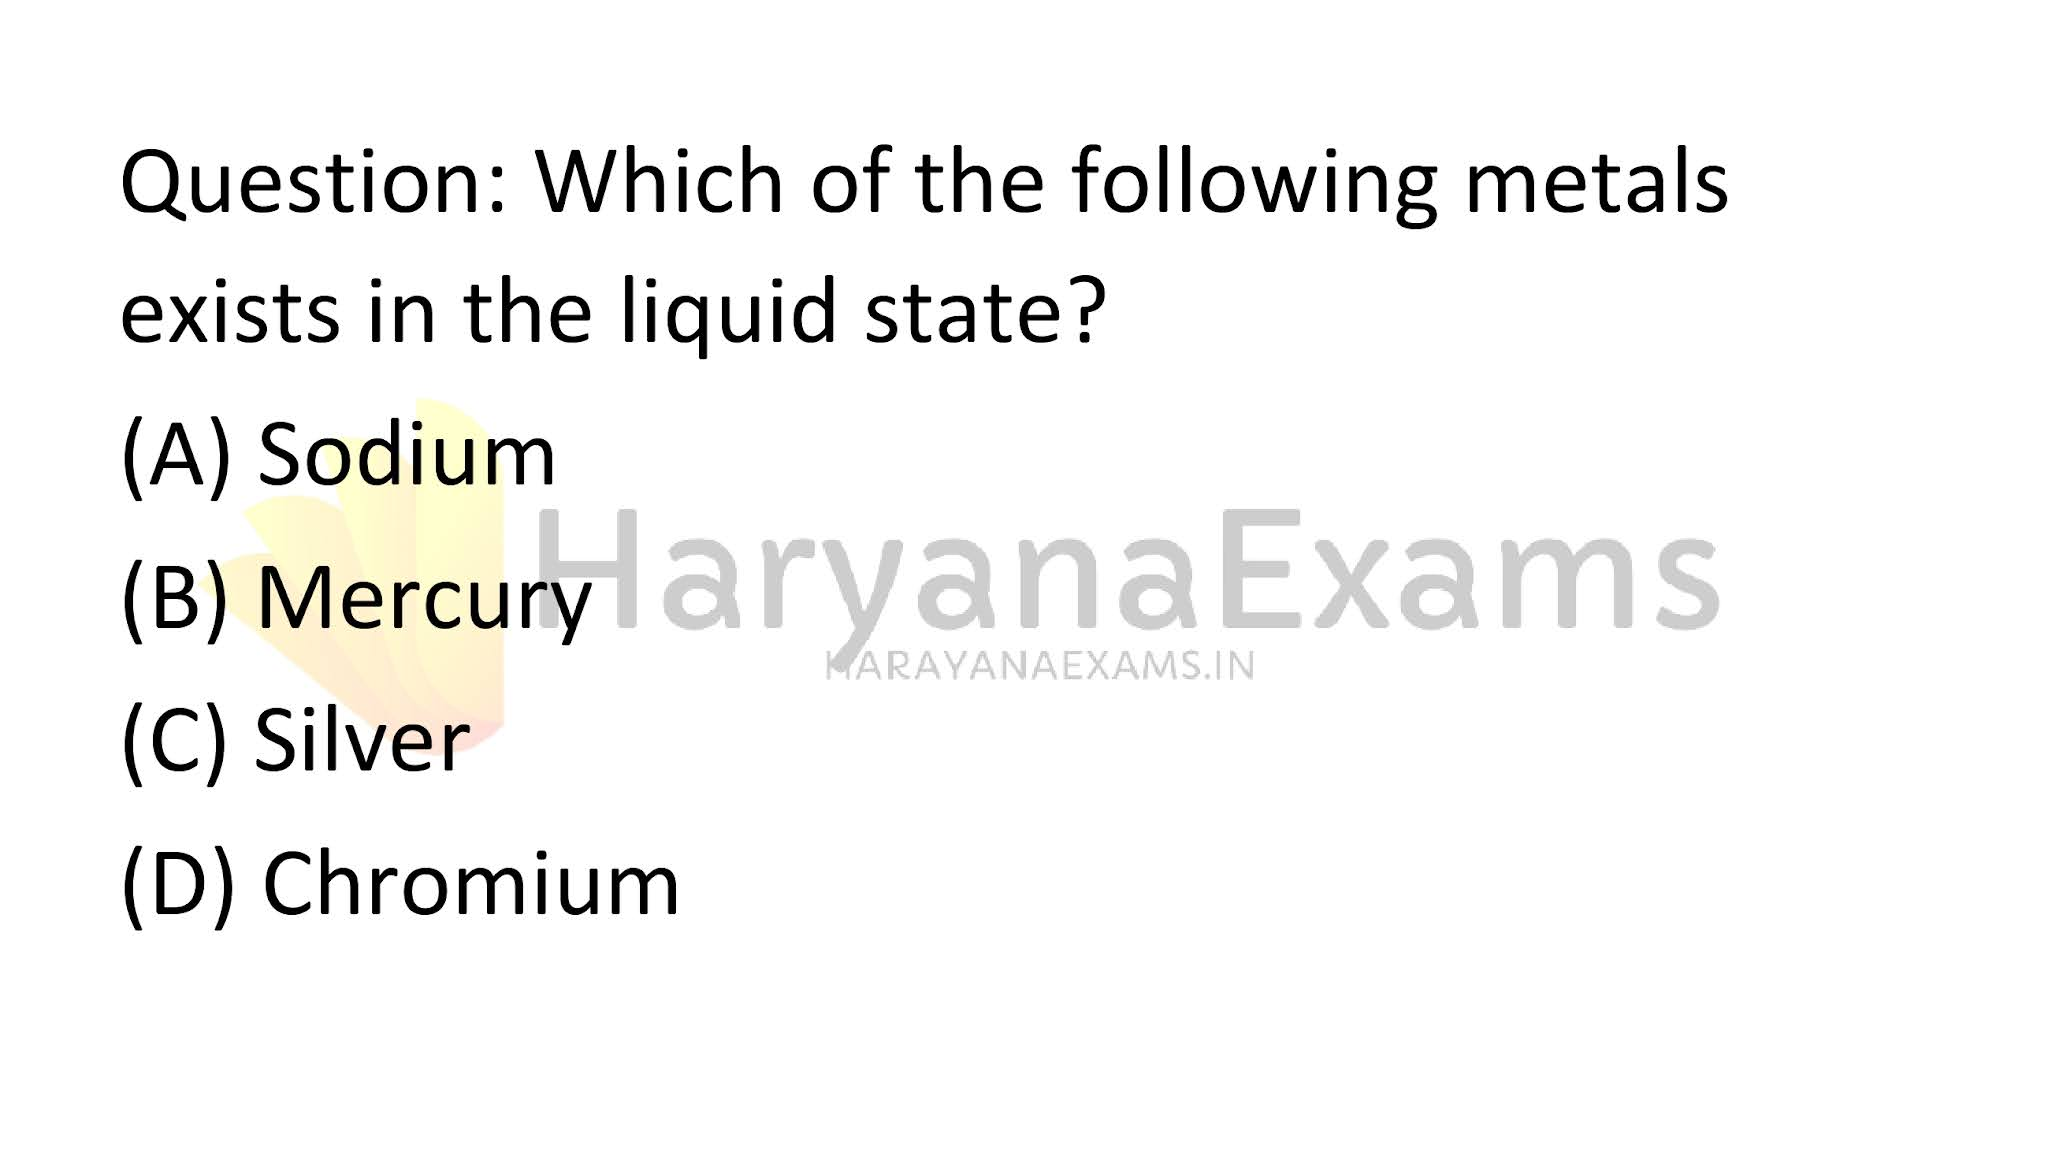 Which of the following metals exists in the liquid state?